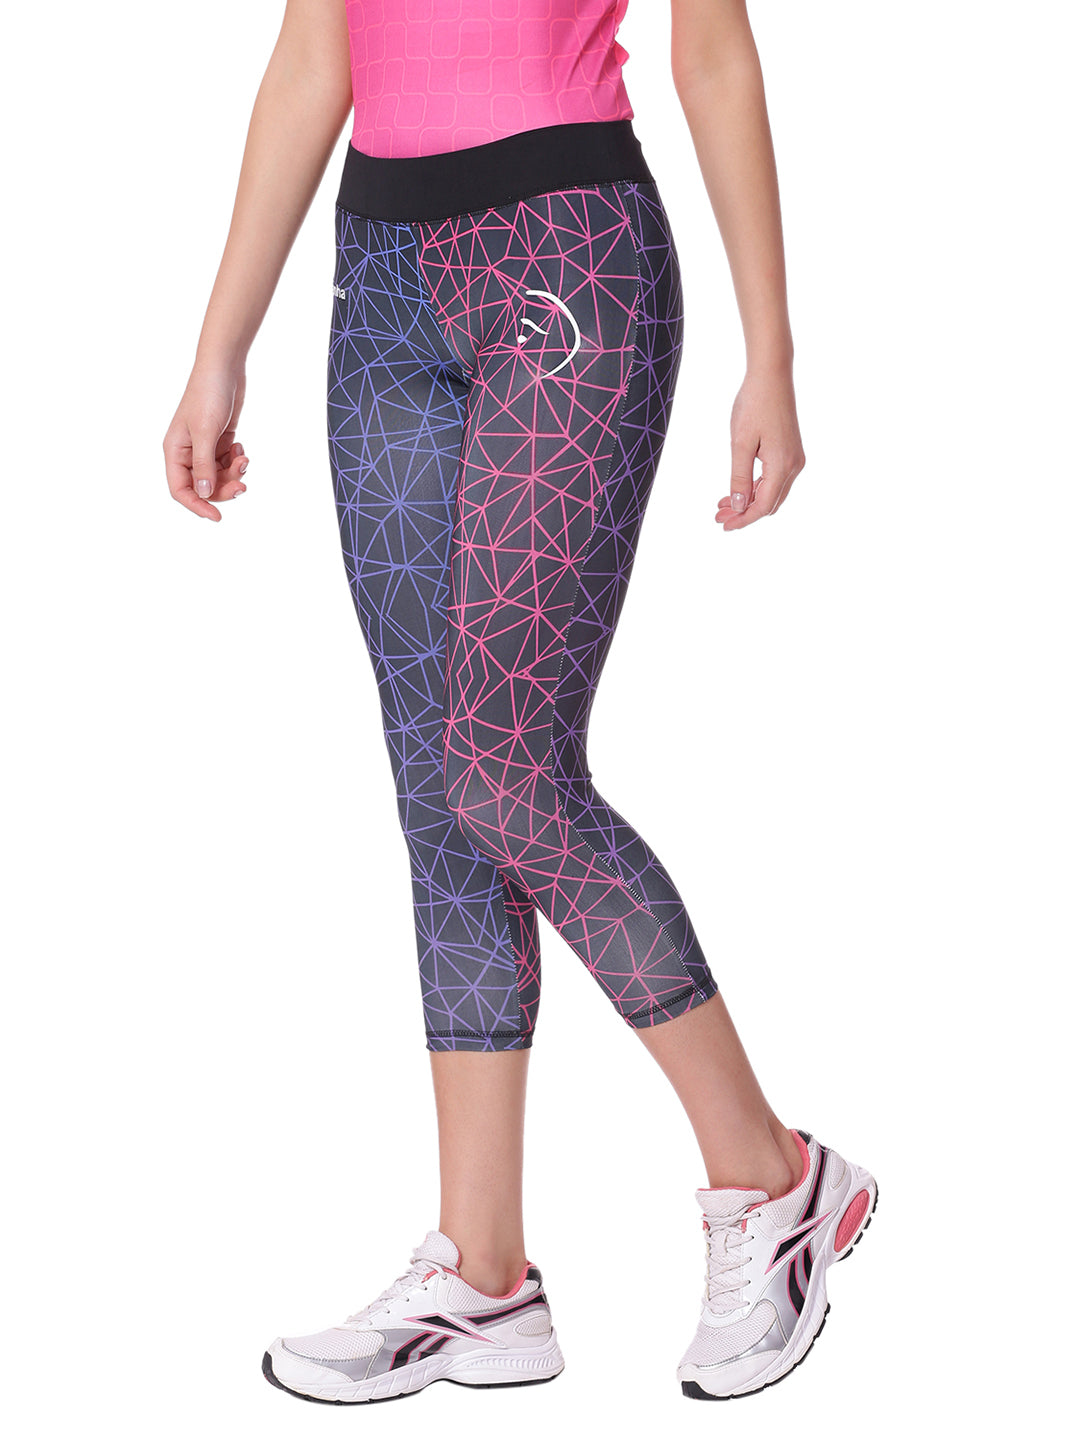 Piranha Women Black Printed Yoga And Running Pants - YP03